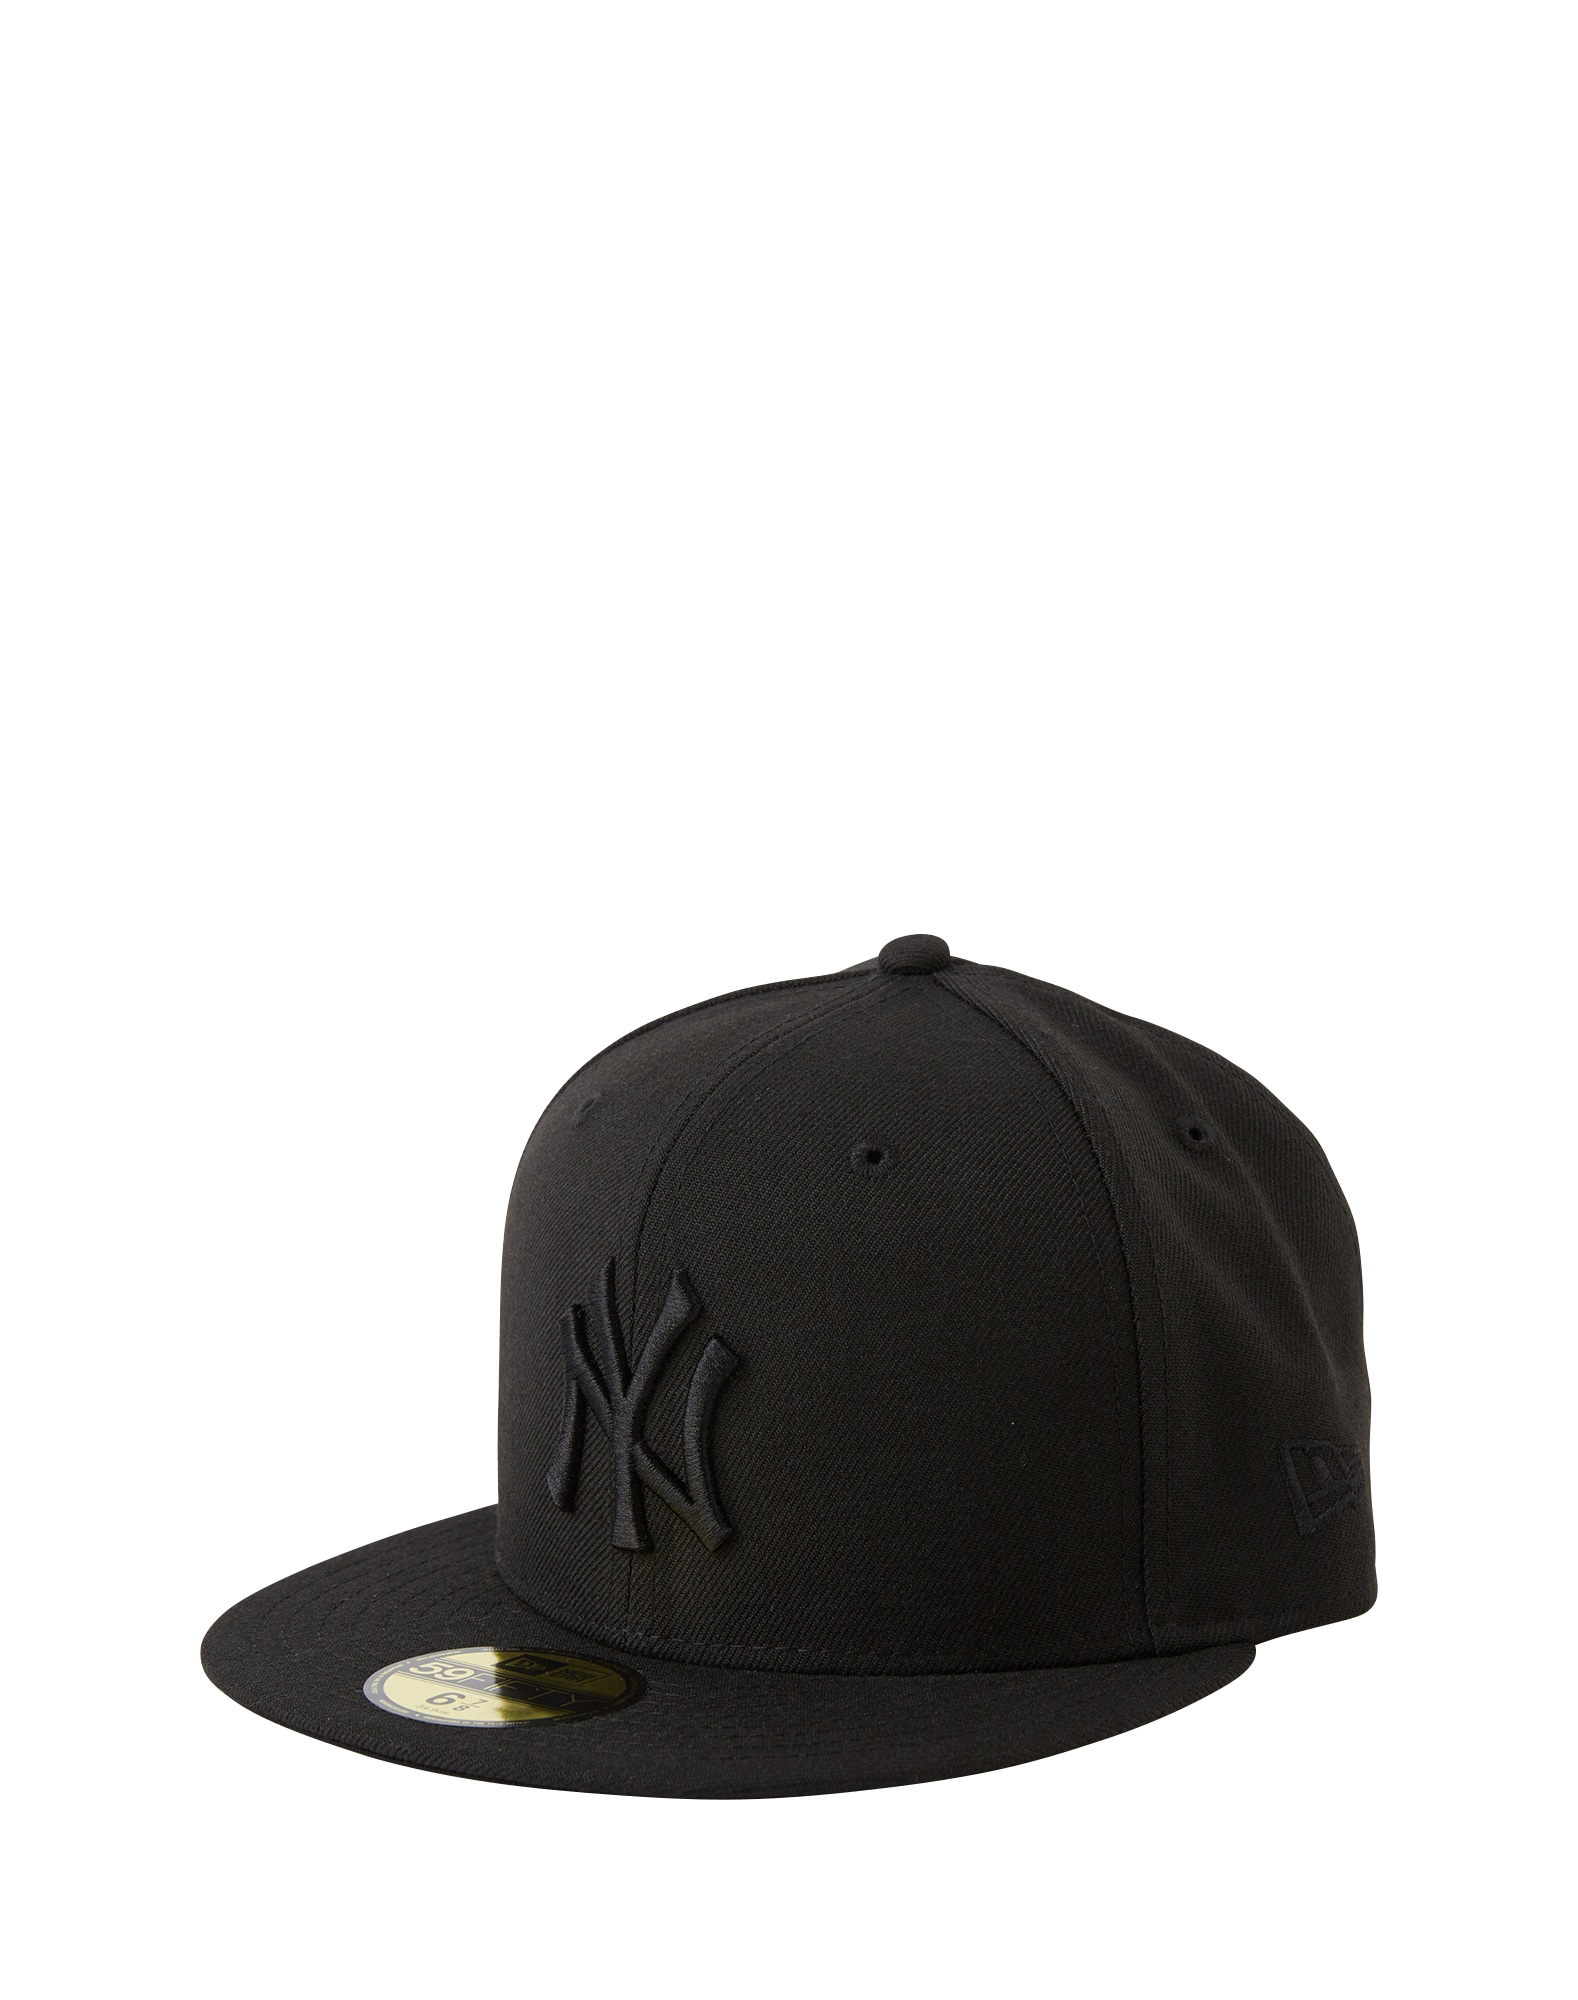 Kšiltovka 59FIFTY Black on Black New York Yankees černá NEW ERA